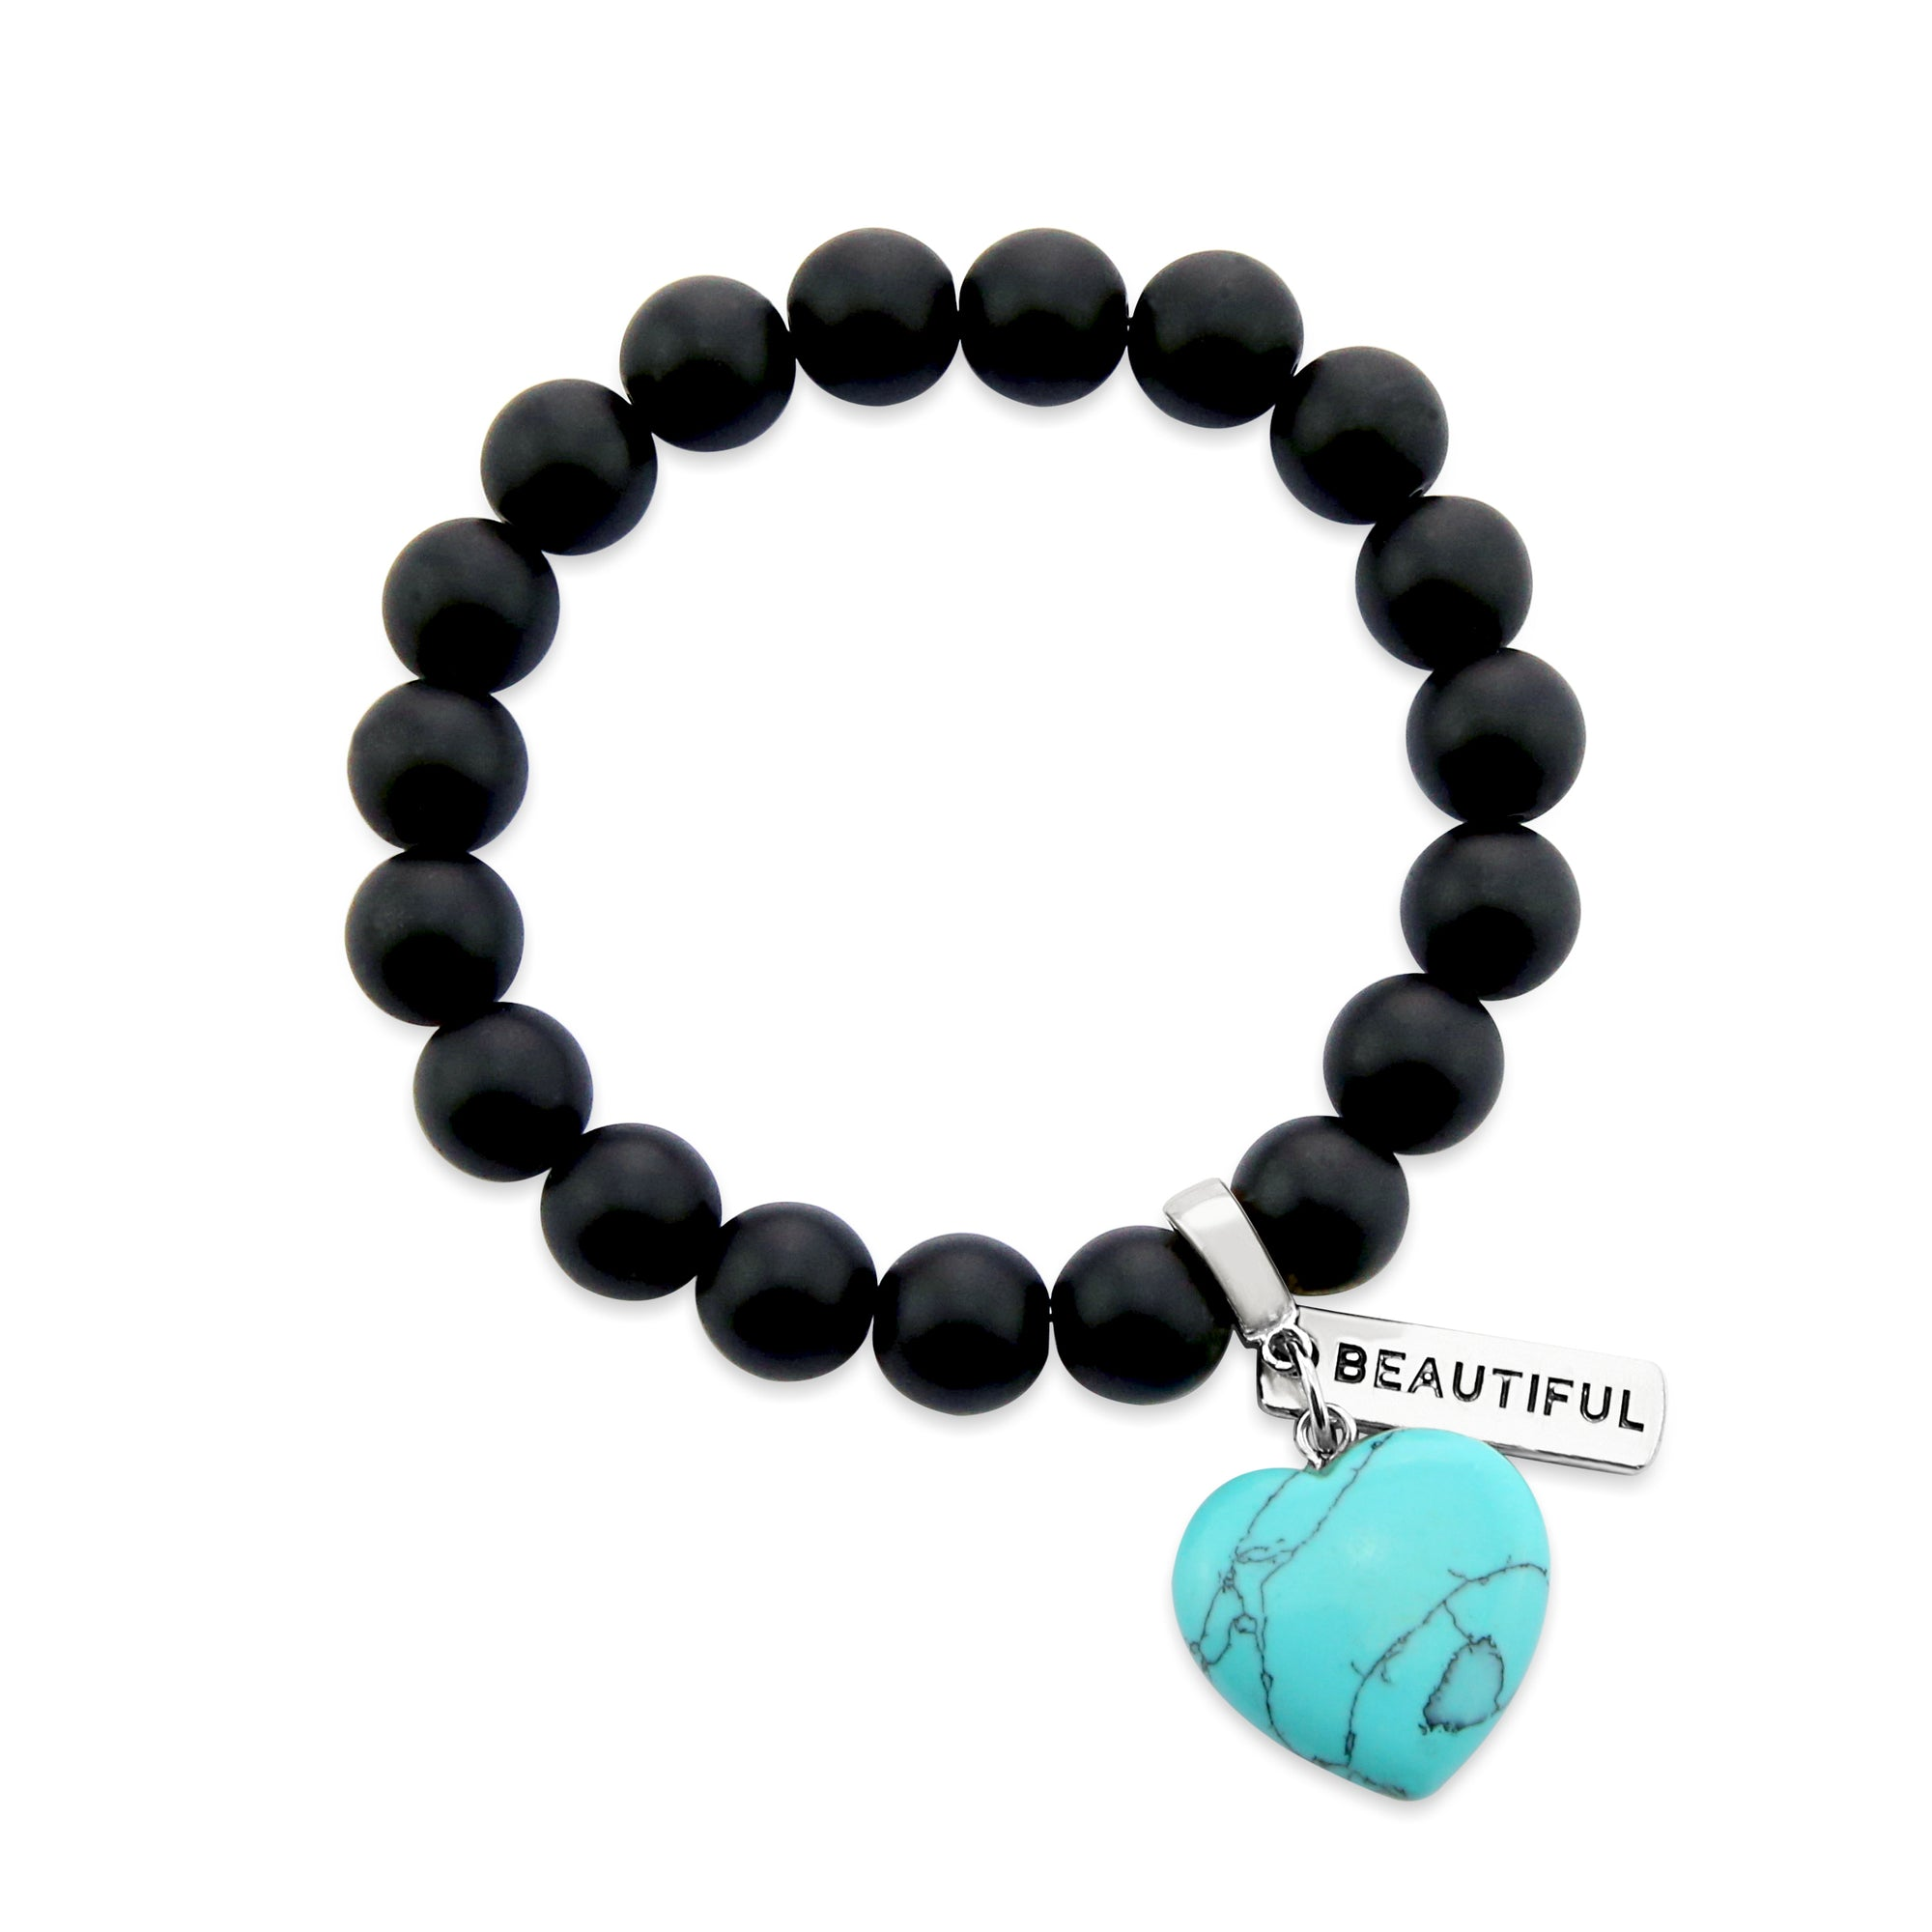 SWEETHEART Bracelet - 10mm MATT BLACK ONYX stone beads with TURQUOISE Heart & Word Charm (5005)